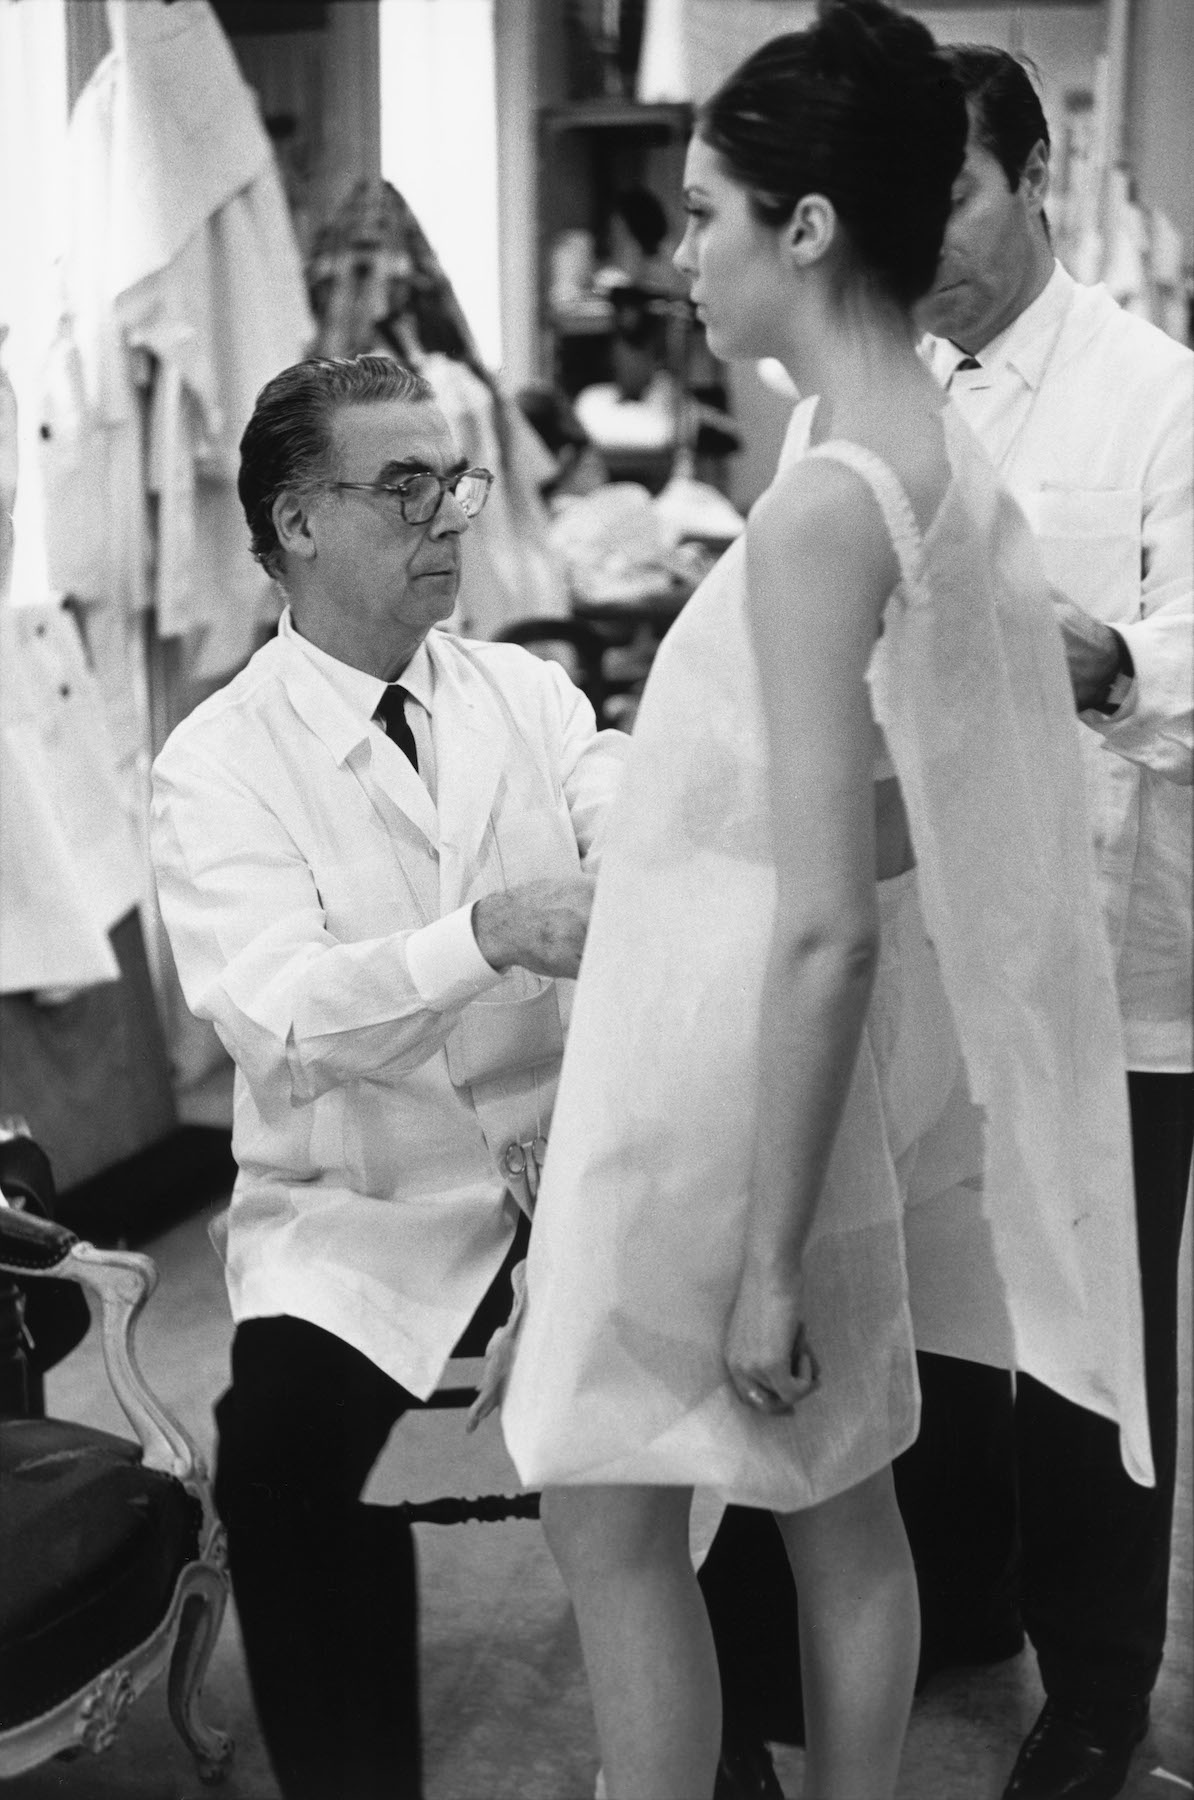 Henri Cartier-Bresson (1908 – 2004) | Cristóbal Balenciaga at work, Paris, 1968 | © Henri Cartier-Bresson / Magnum Photos | V&A Museum